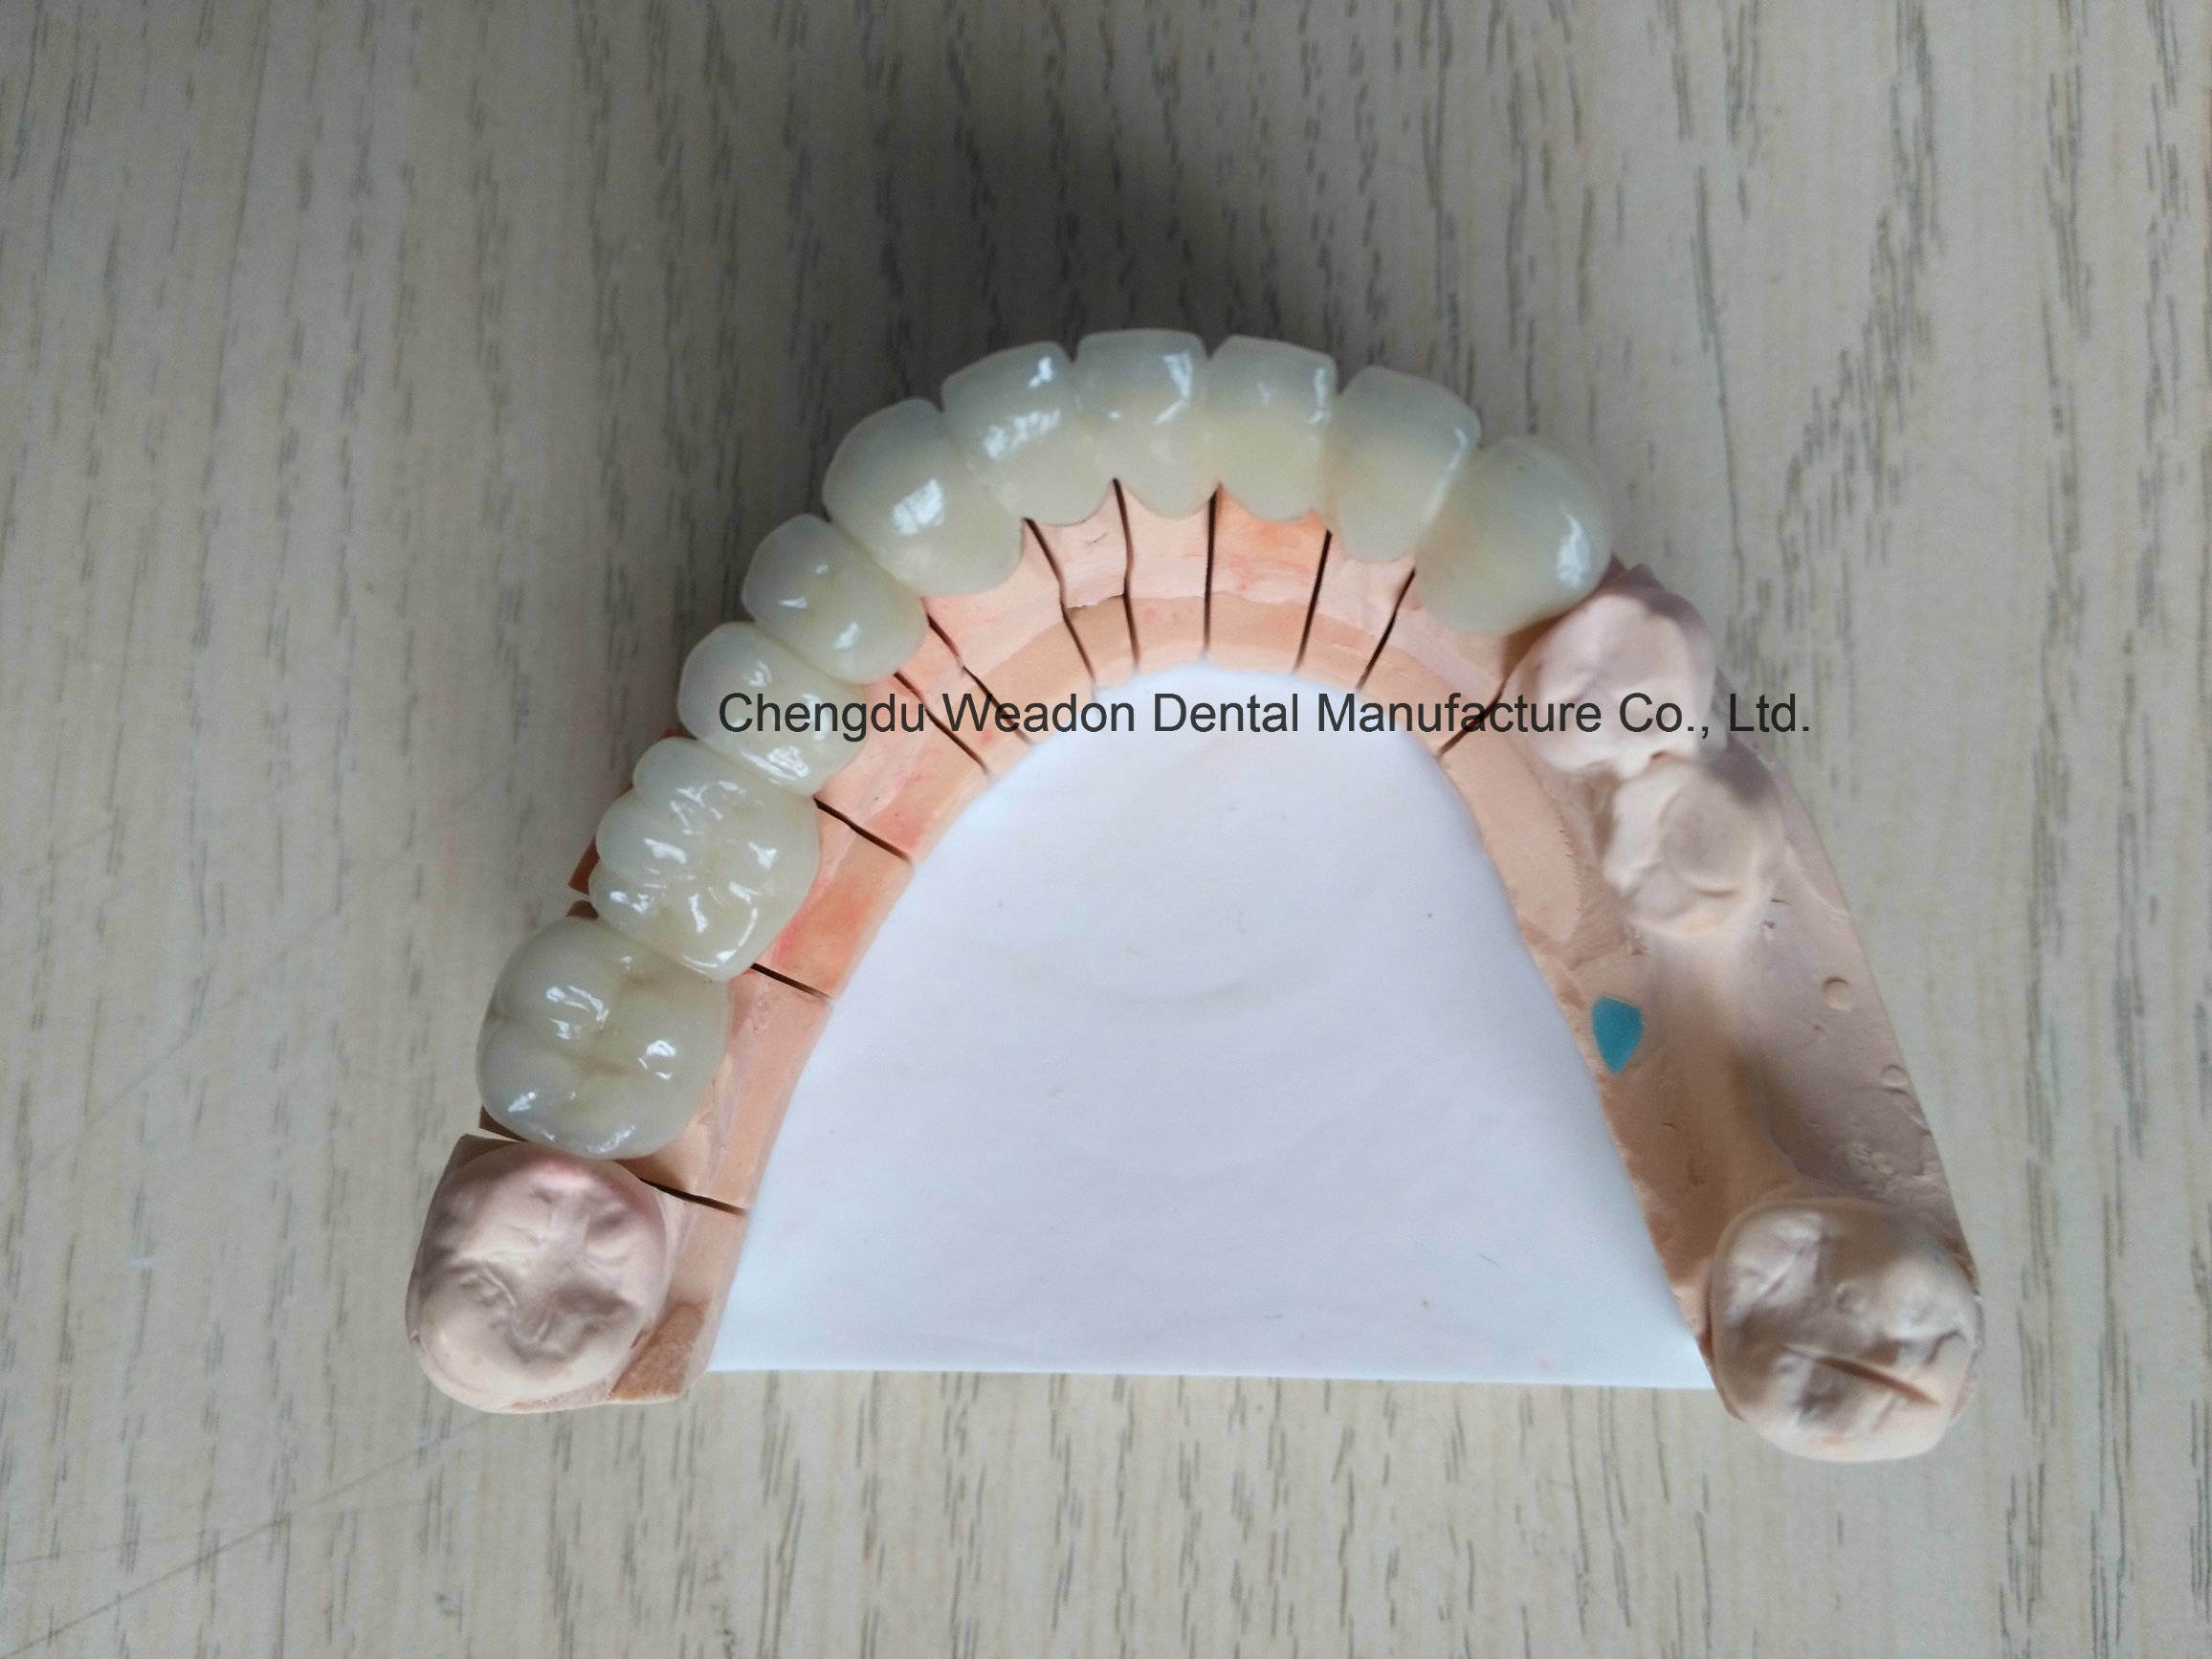 Metal Fused Ceramic Bridge Denture From Lab Service Center